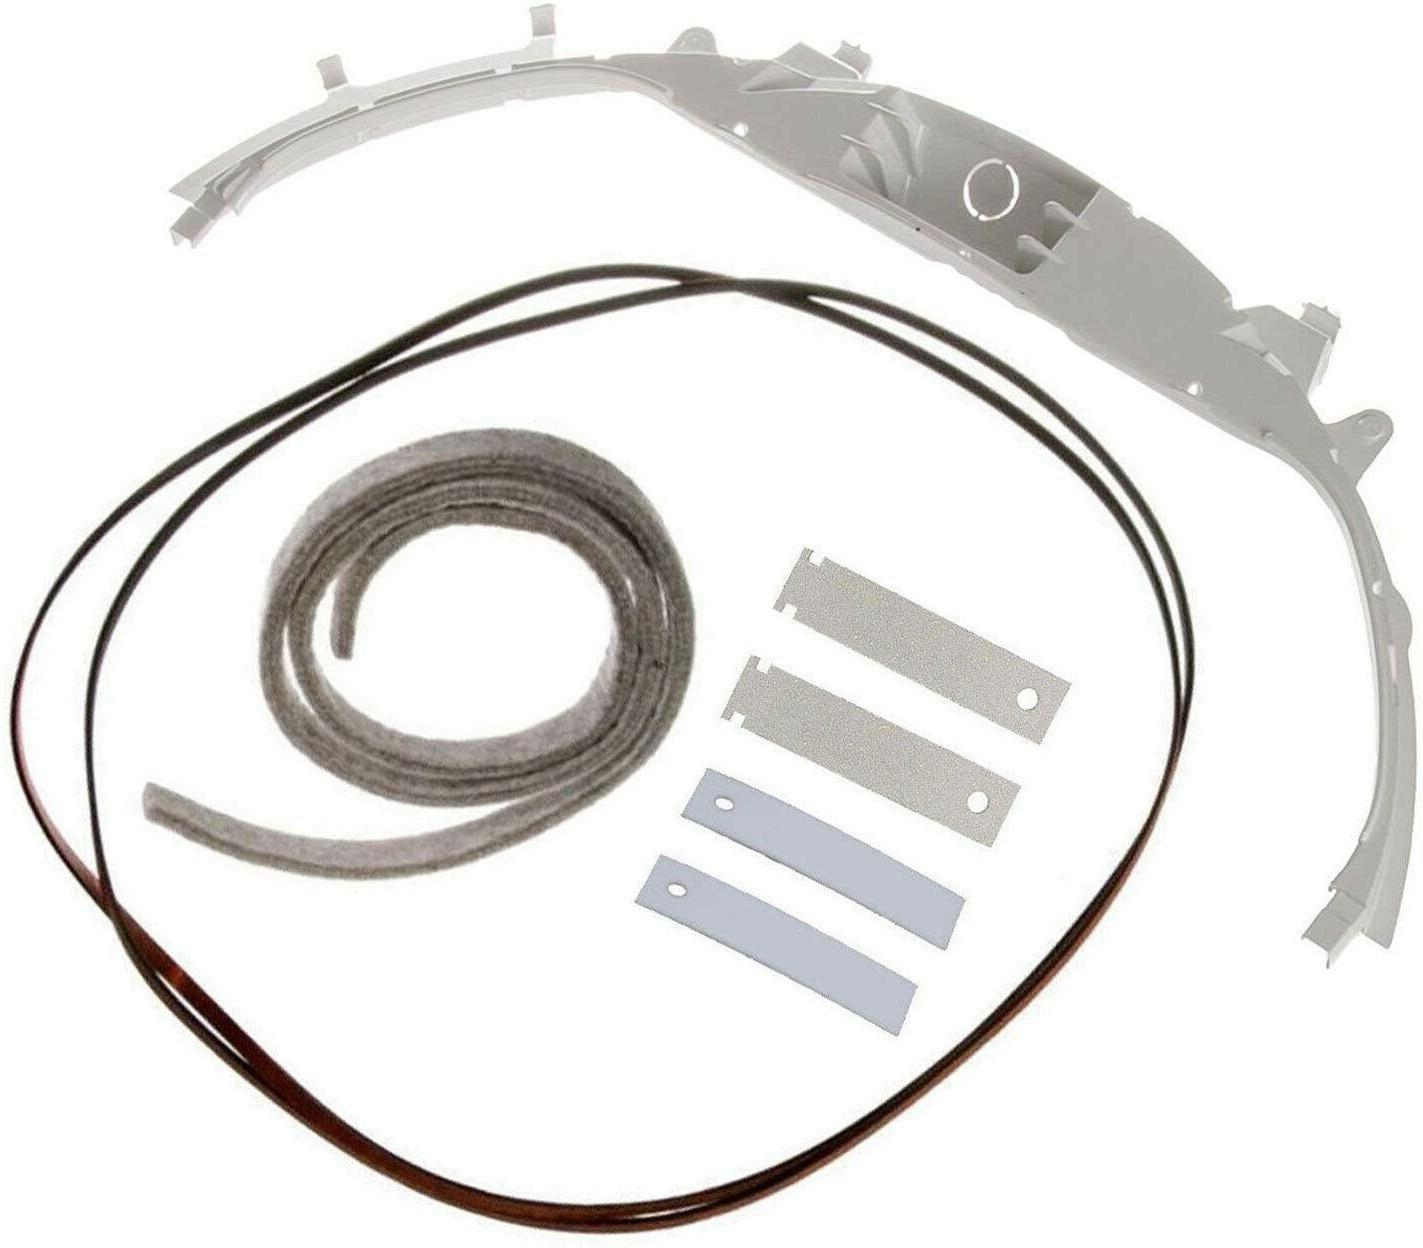 2 3 days delivery we49x20697 dryer bearing